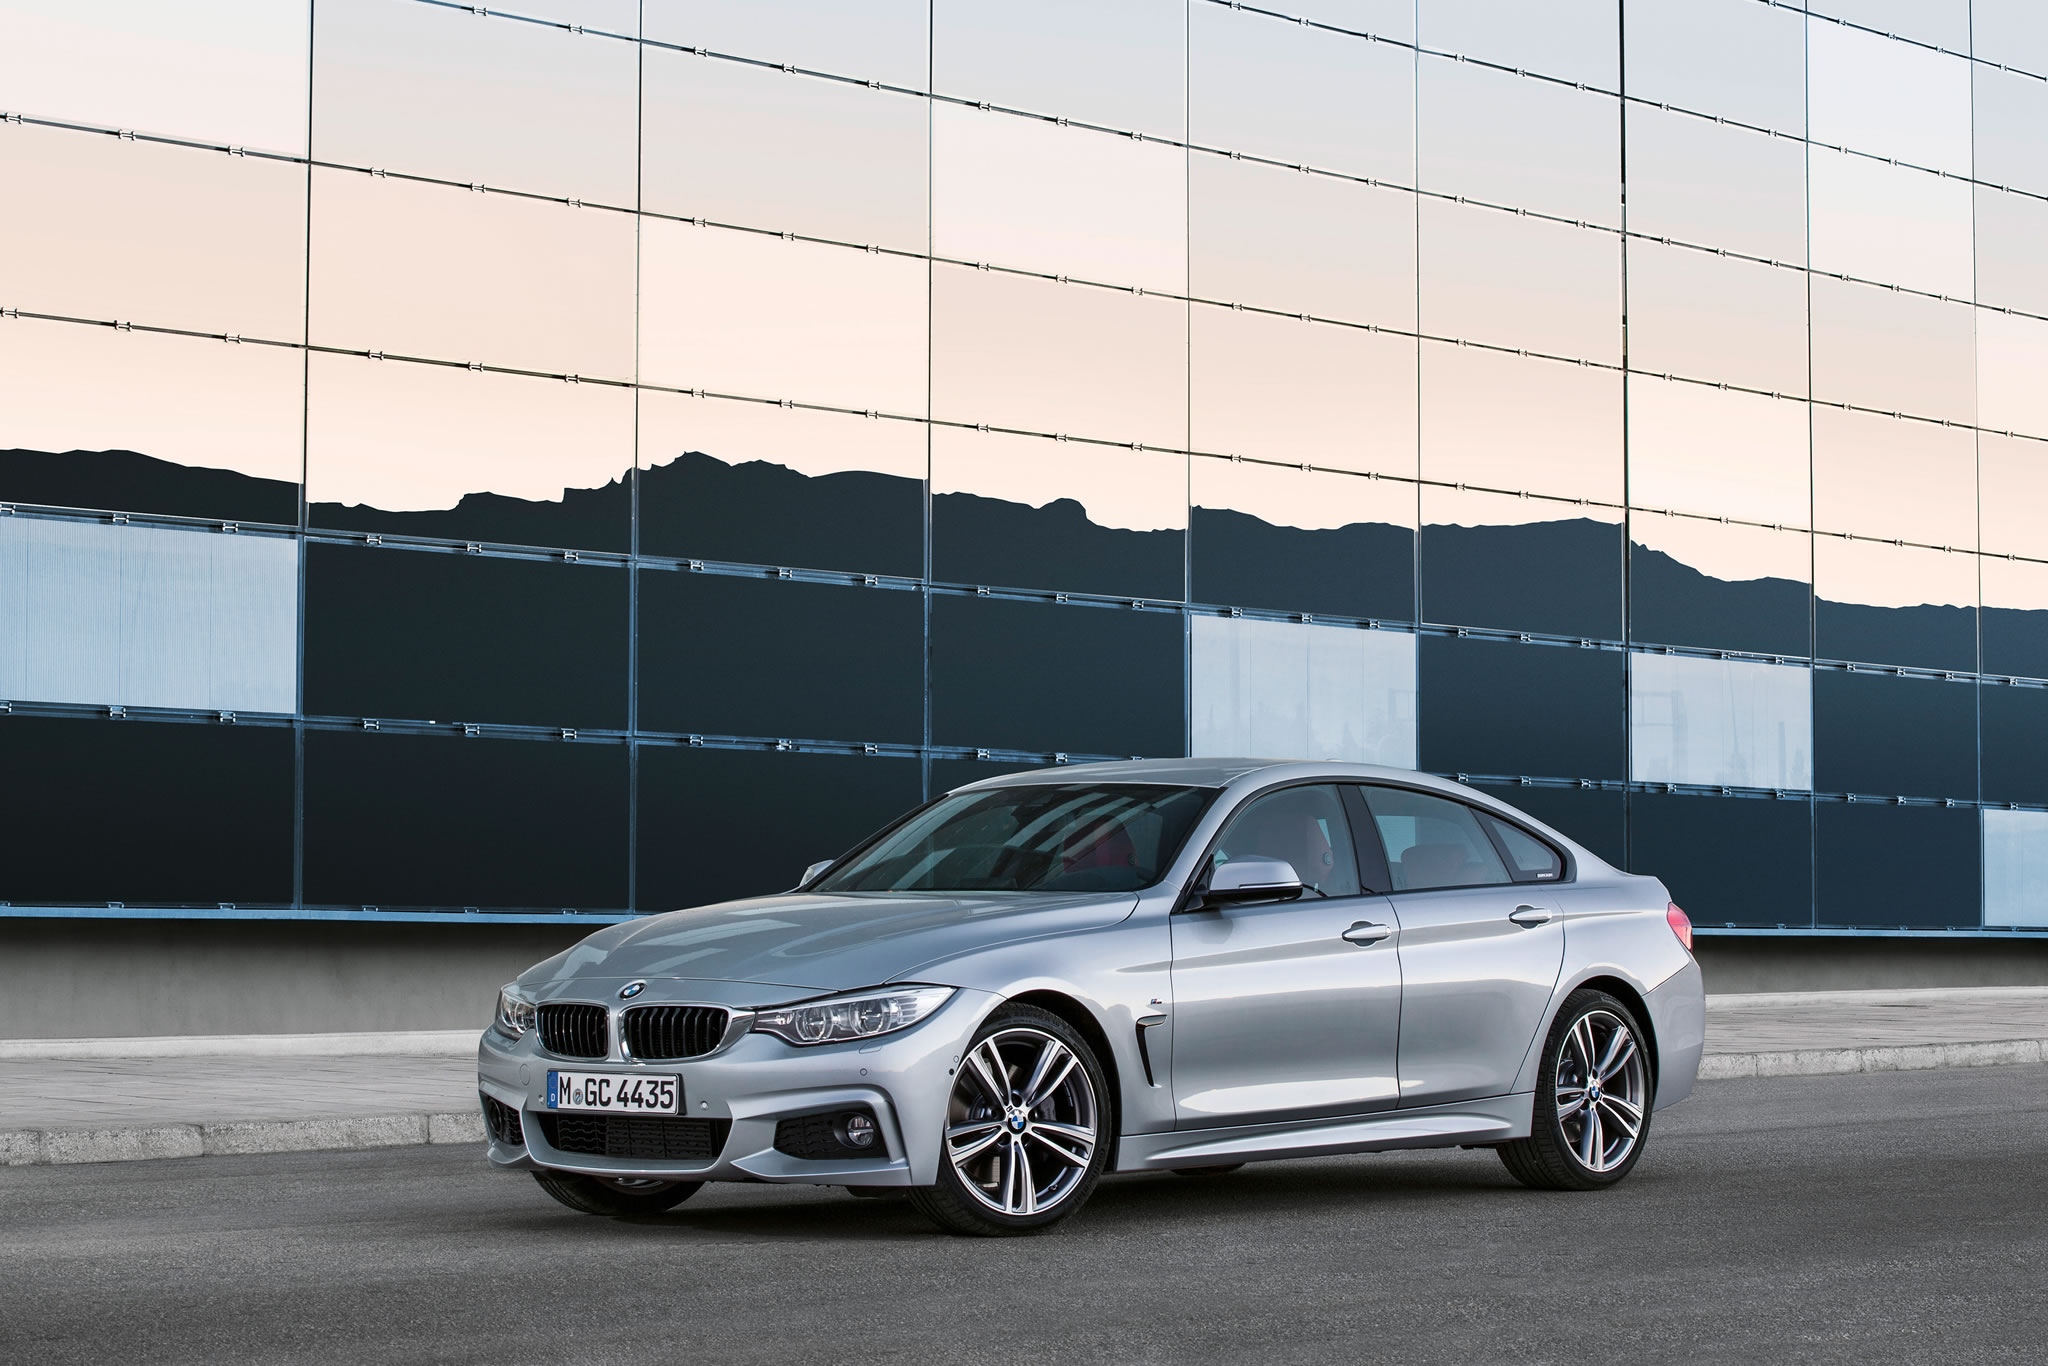 Bmw 435i Gran Coupe >> 2015 BMW 435i Gran Coupe M Sport - front photo, Glacier Silver color, size 2048 x 1366, nr. 17 ...